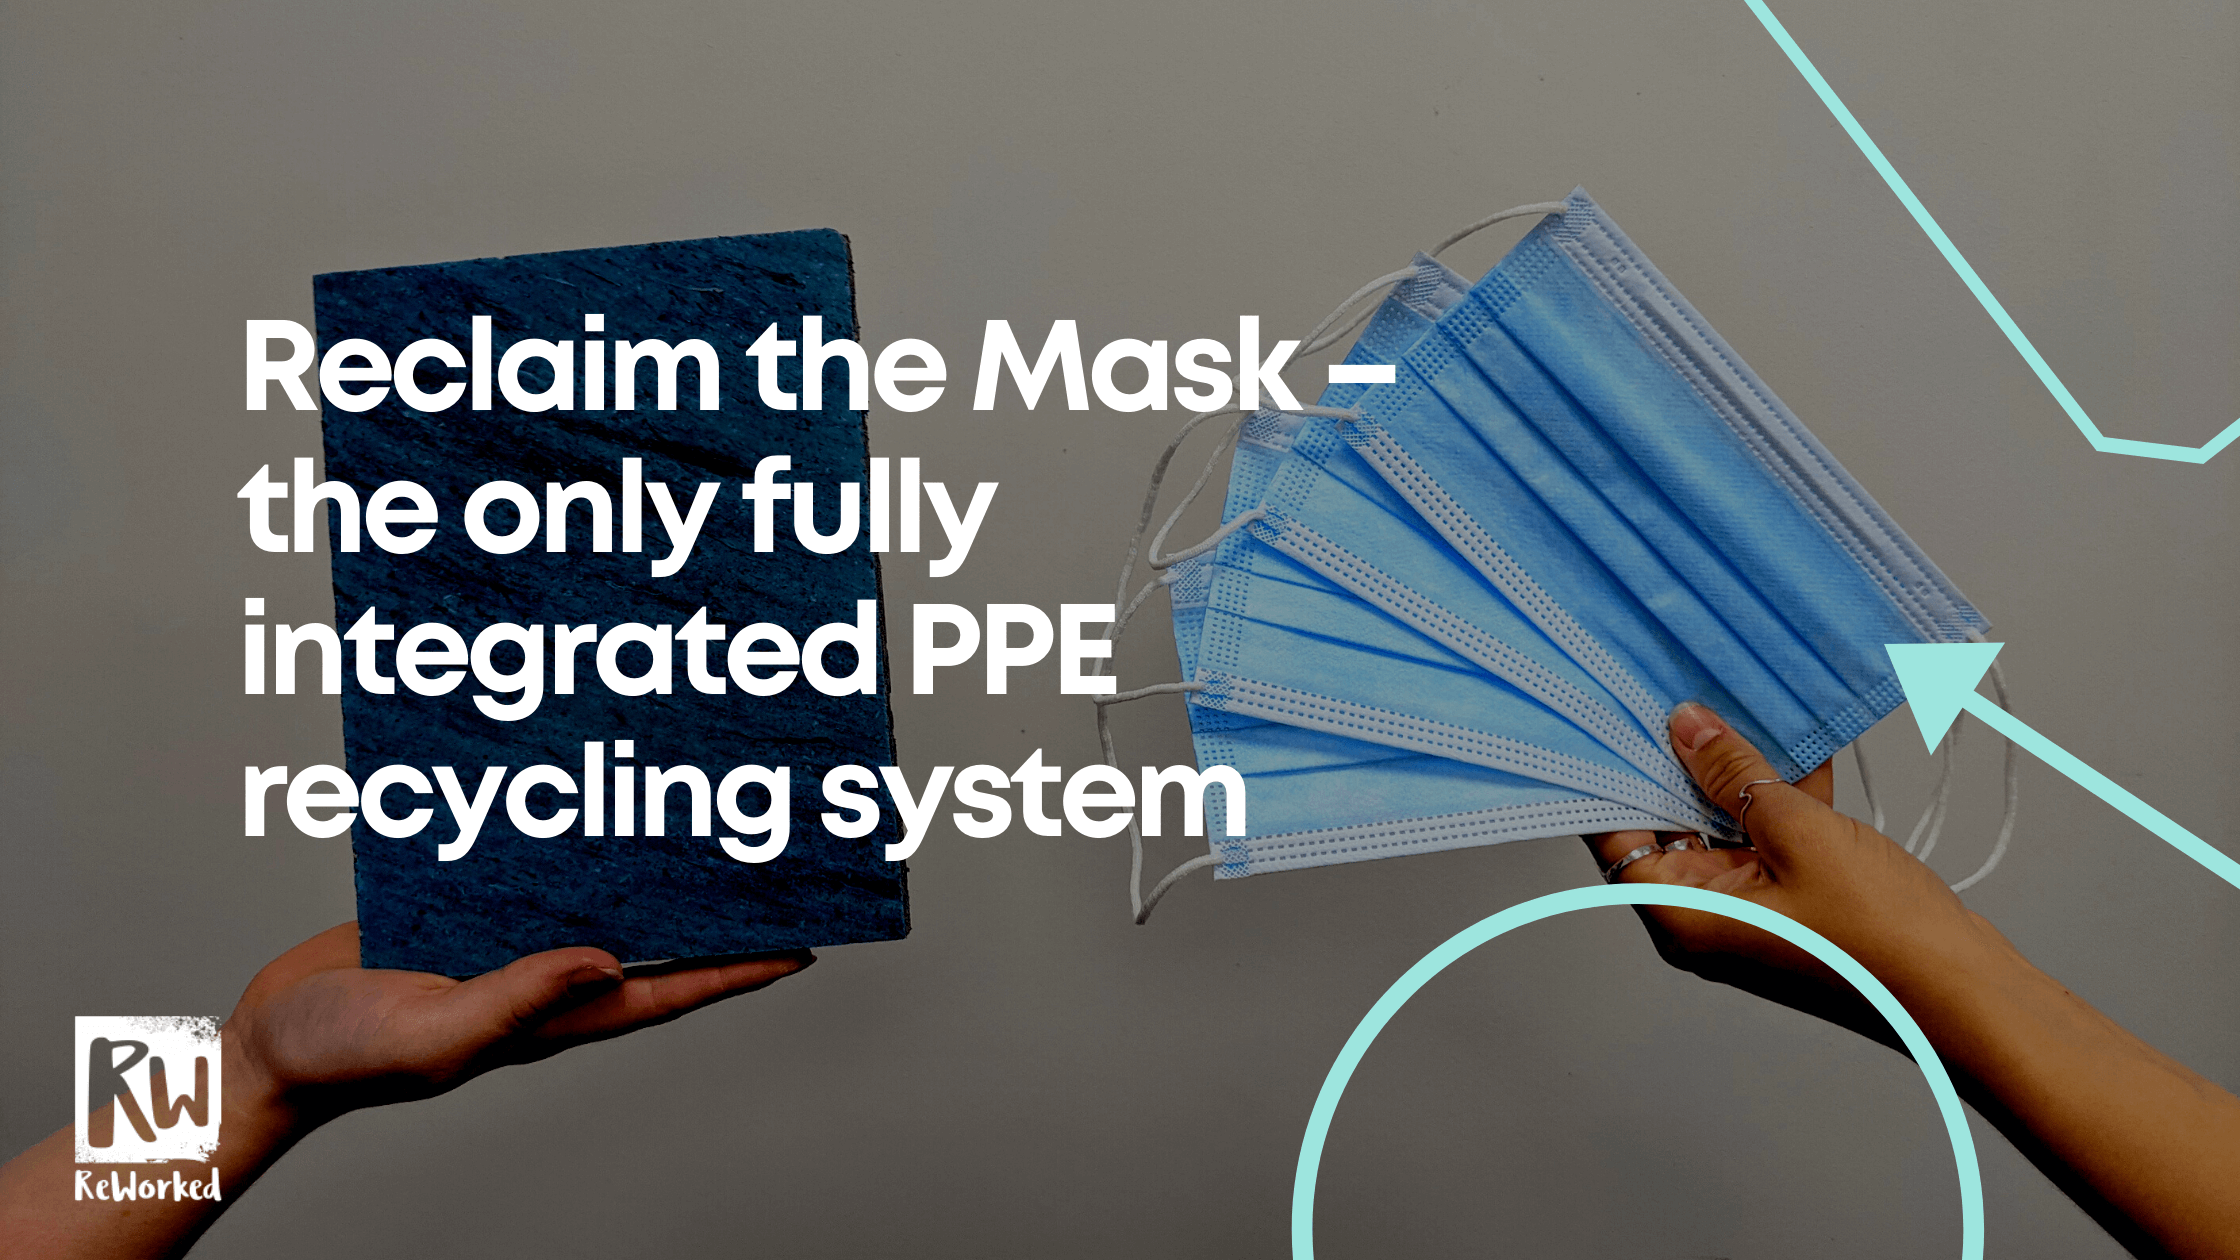 Reclaim the Mask – the only fully integrated PPE recycling system